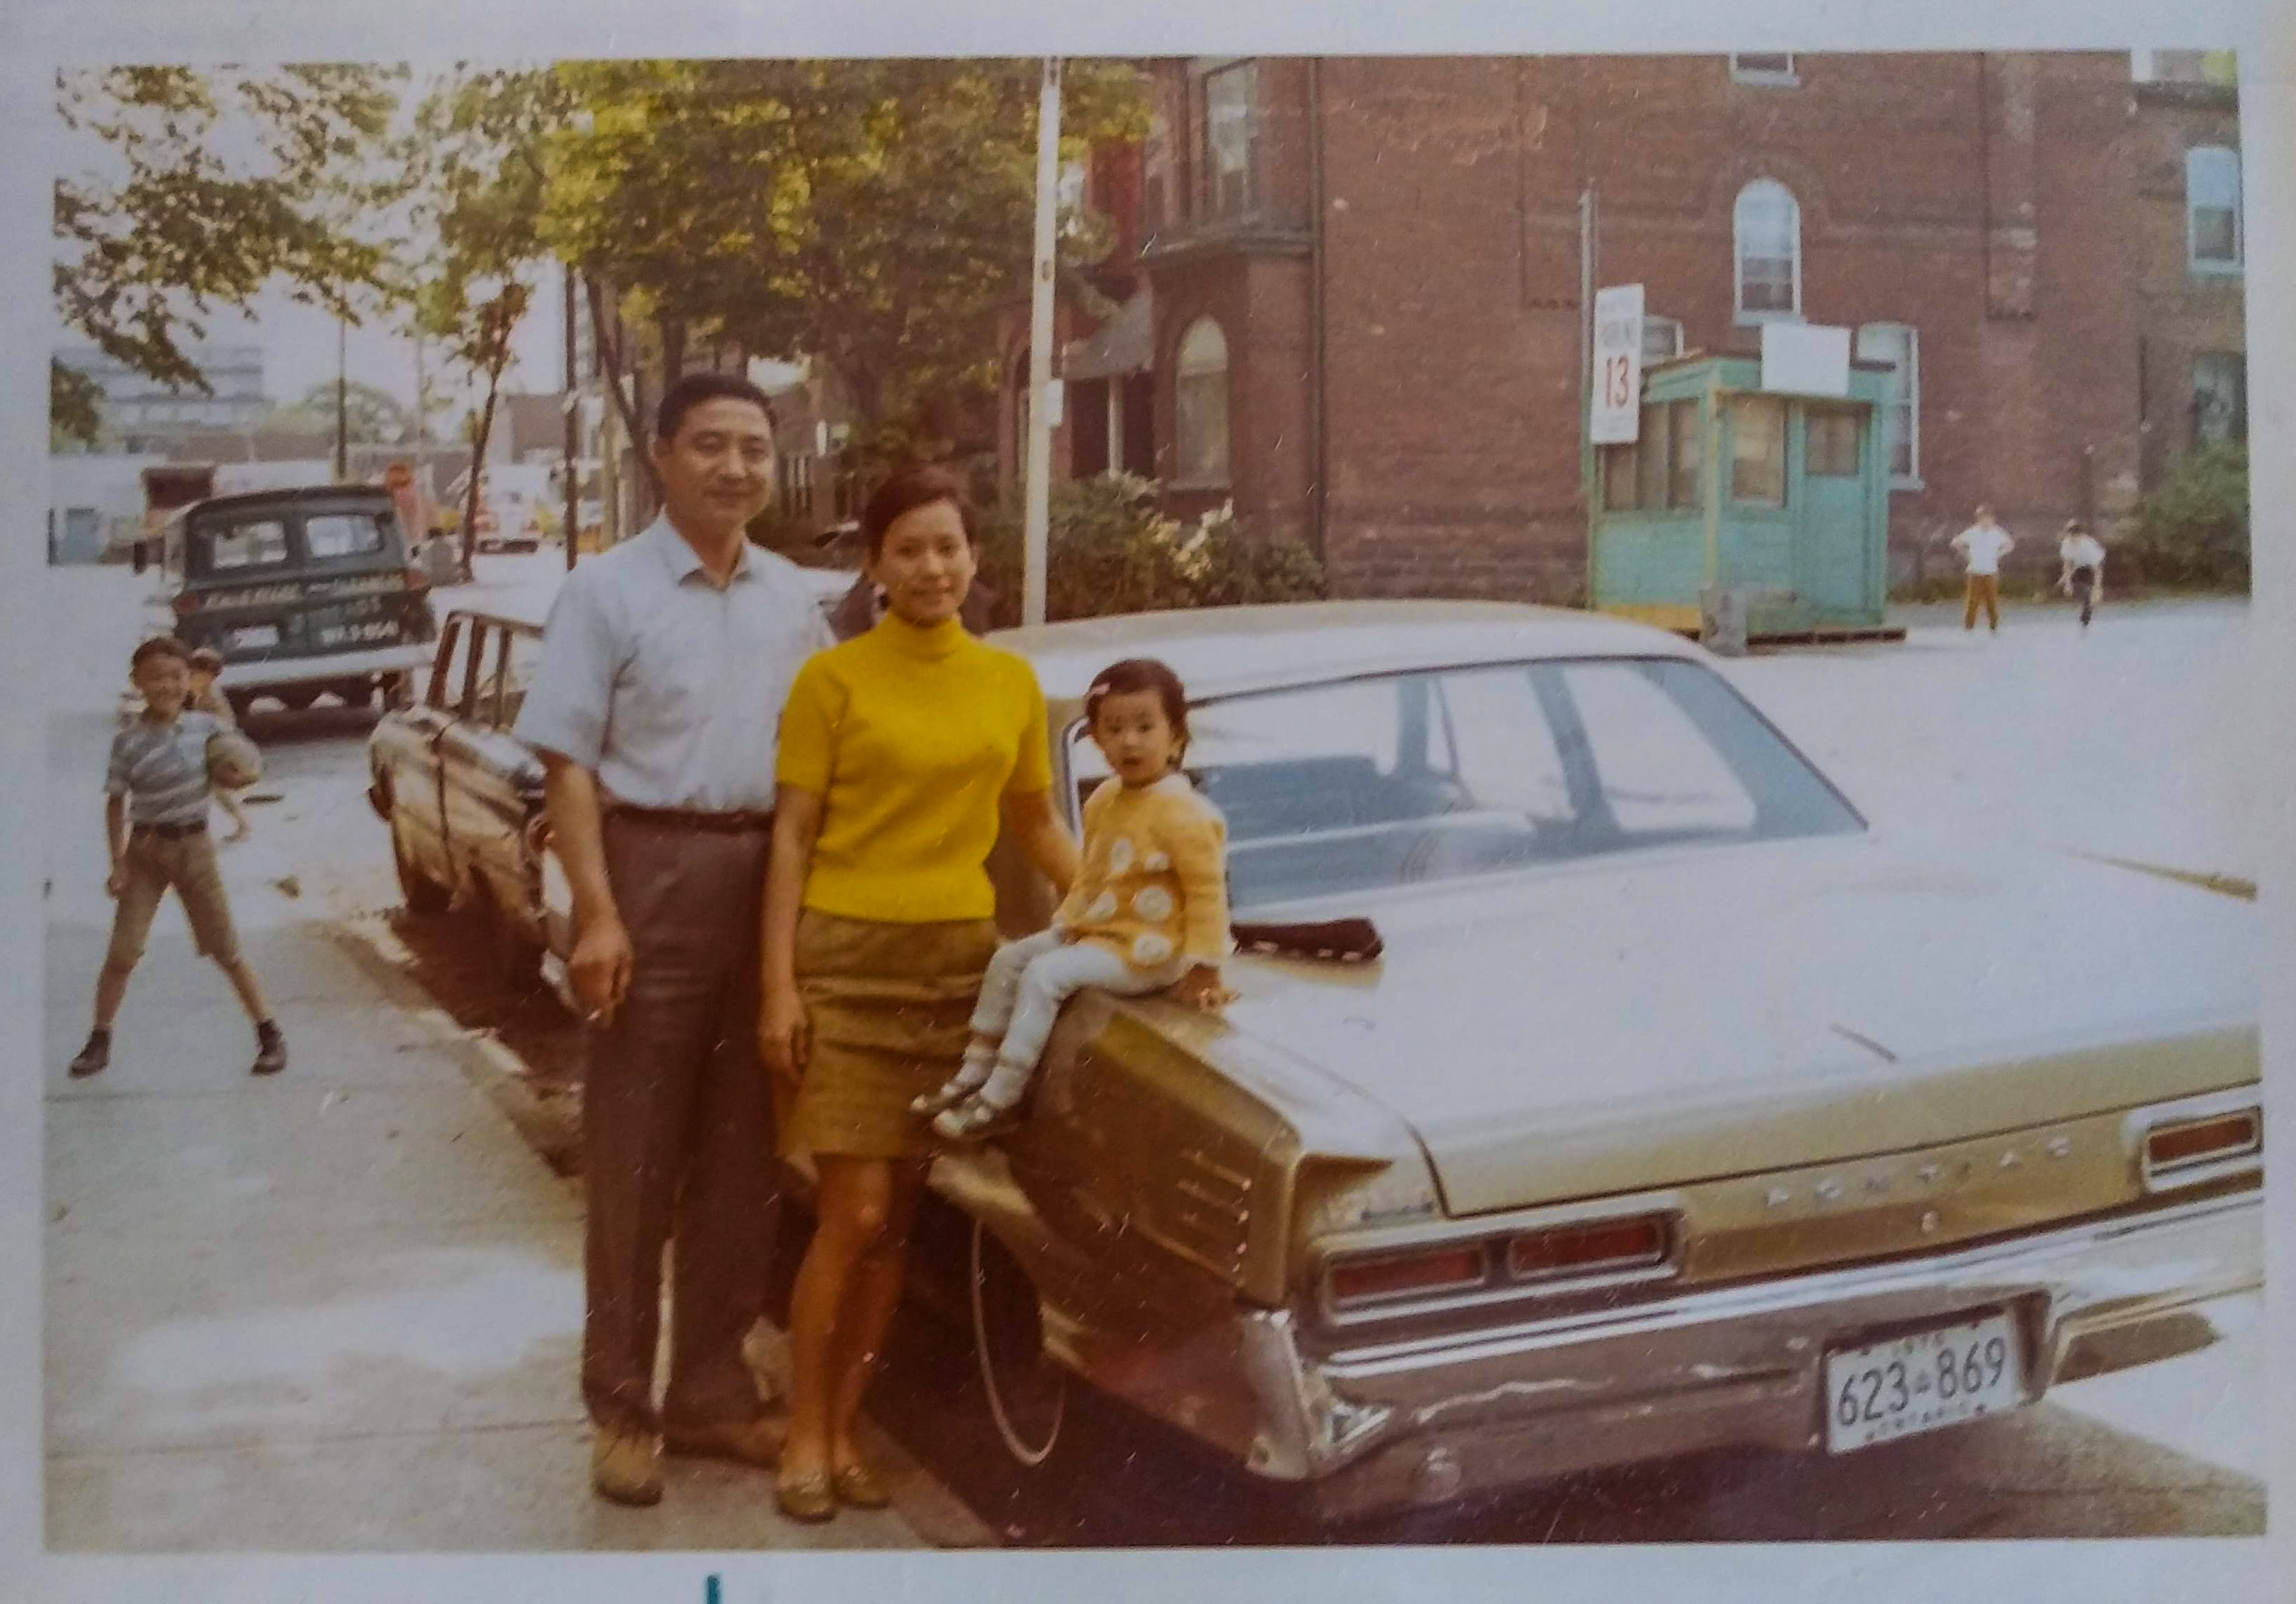 A man (left) and a woman (center) stand next to their brown Pontiac car. With them, their baby (the writer) is perched on the trunk of the car.